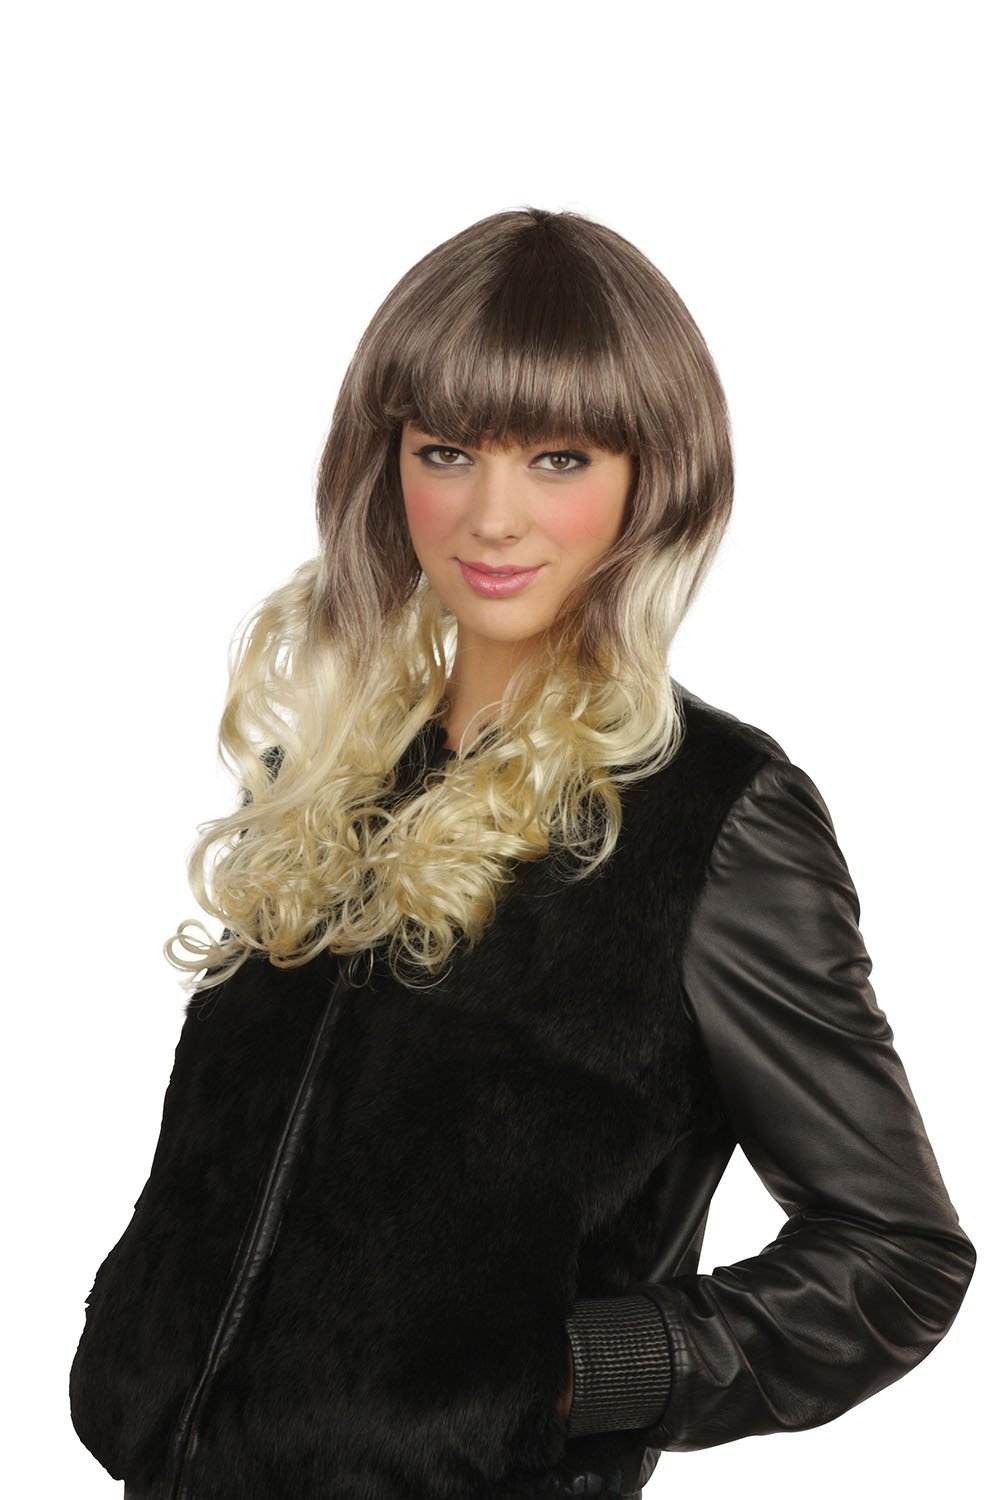 Bristol Novelty BW802 Fancy Dress Wig. Nicky bw800